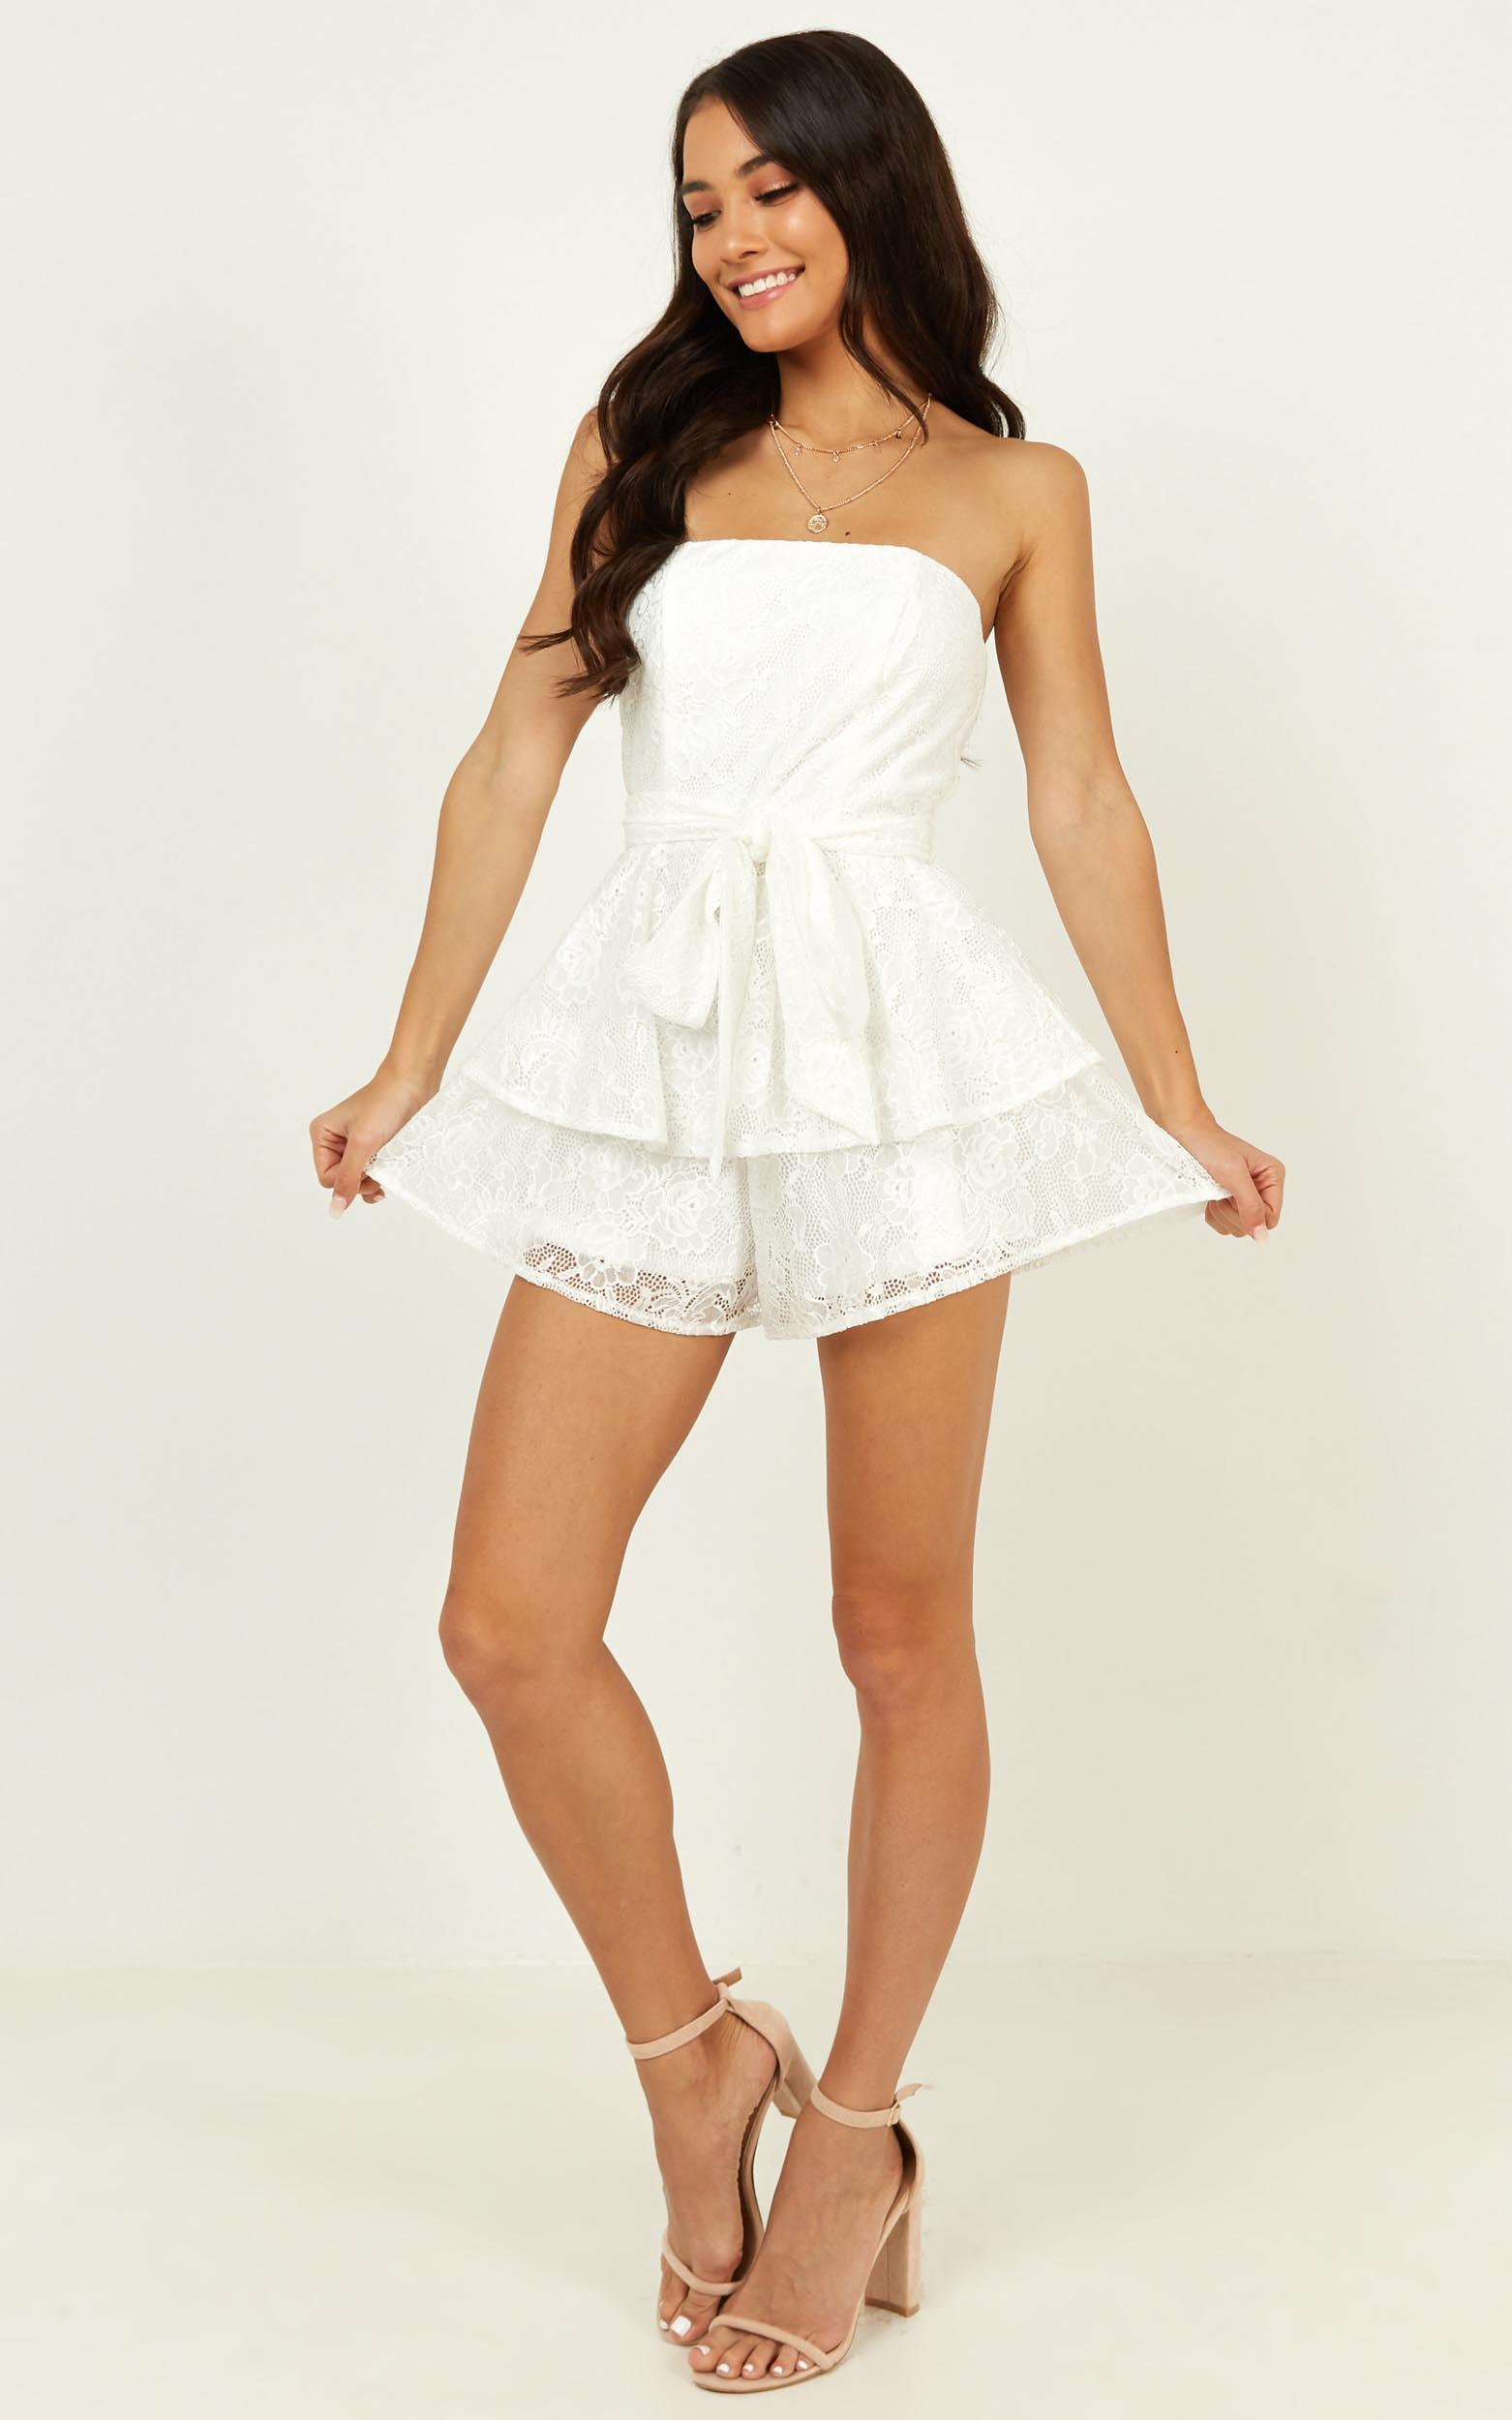 I Never Knew Love Playsuit in white lace - 20 (XXXXL), White, hi-res image number null